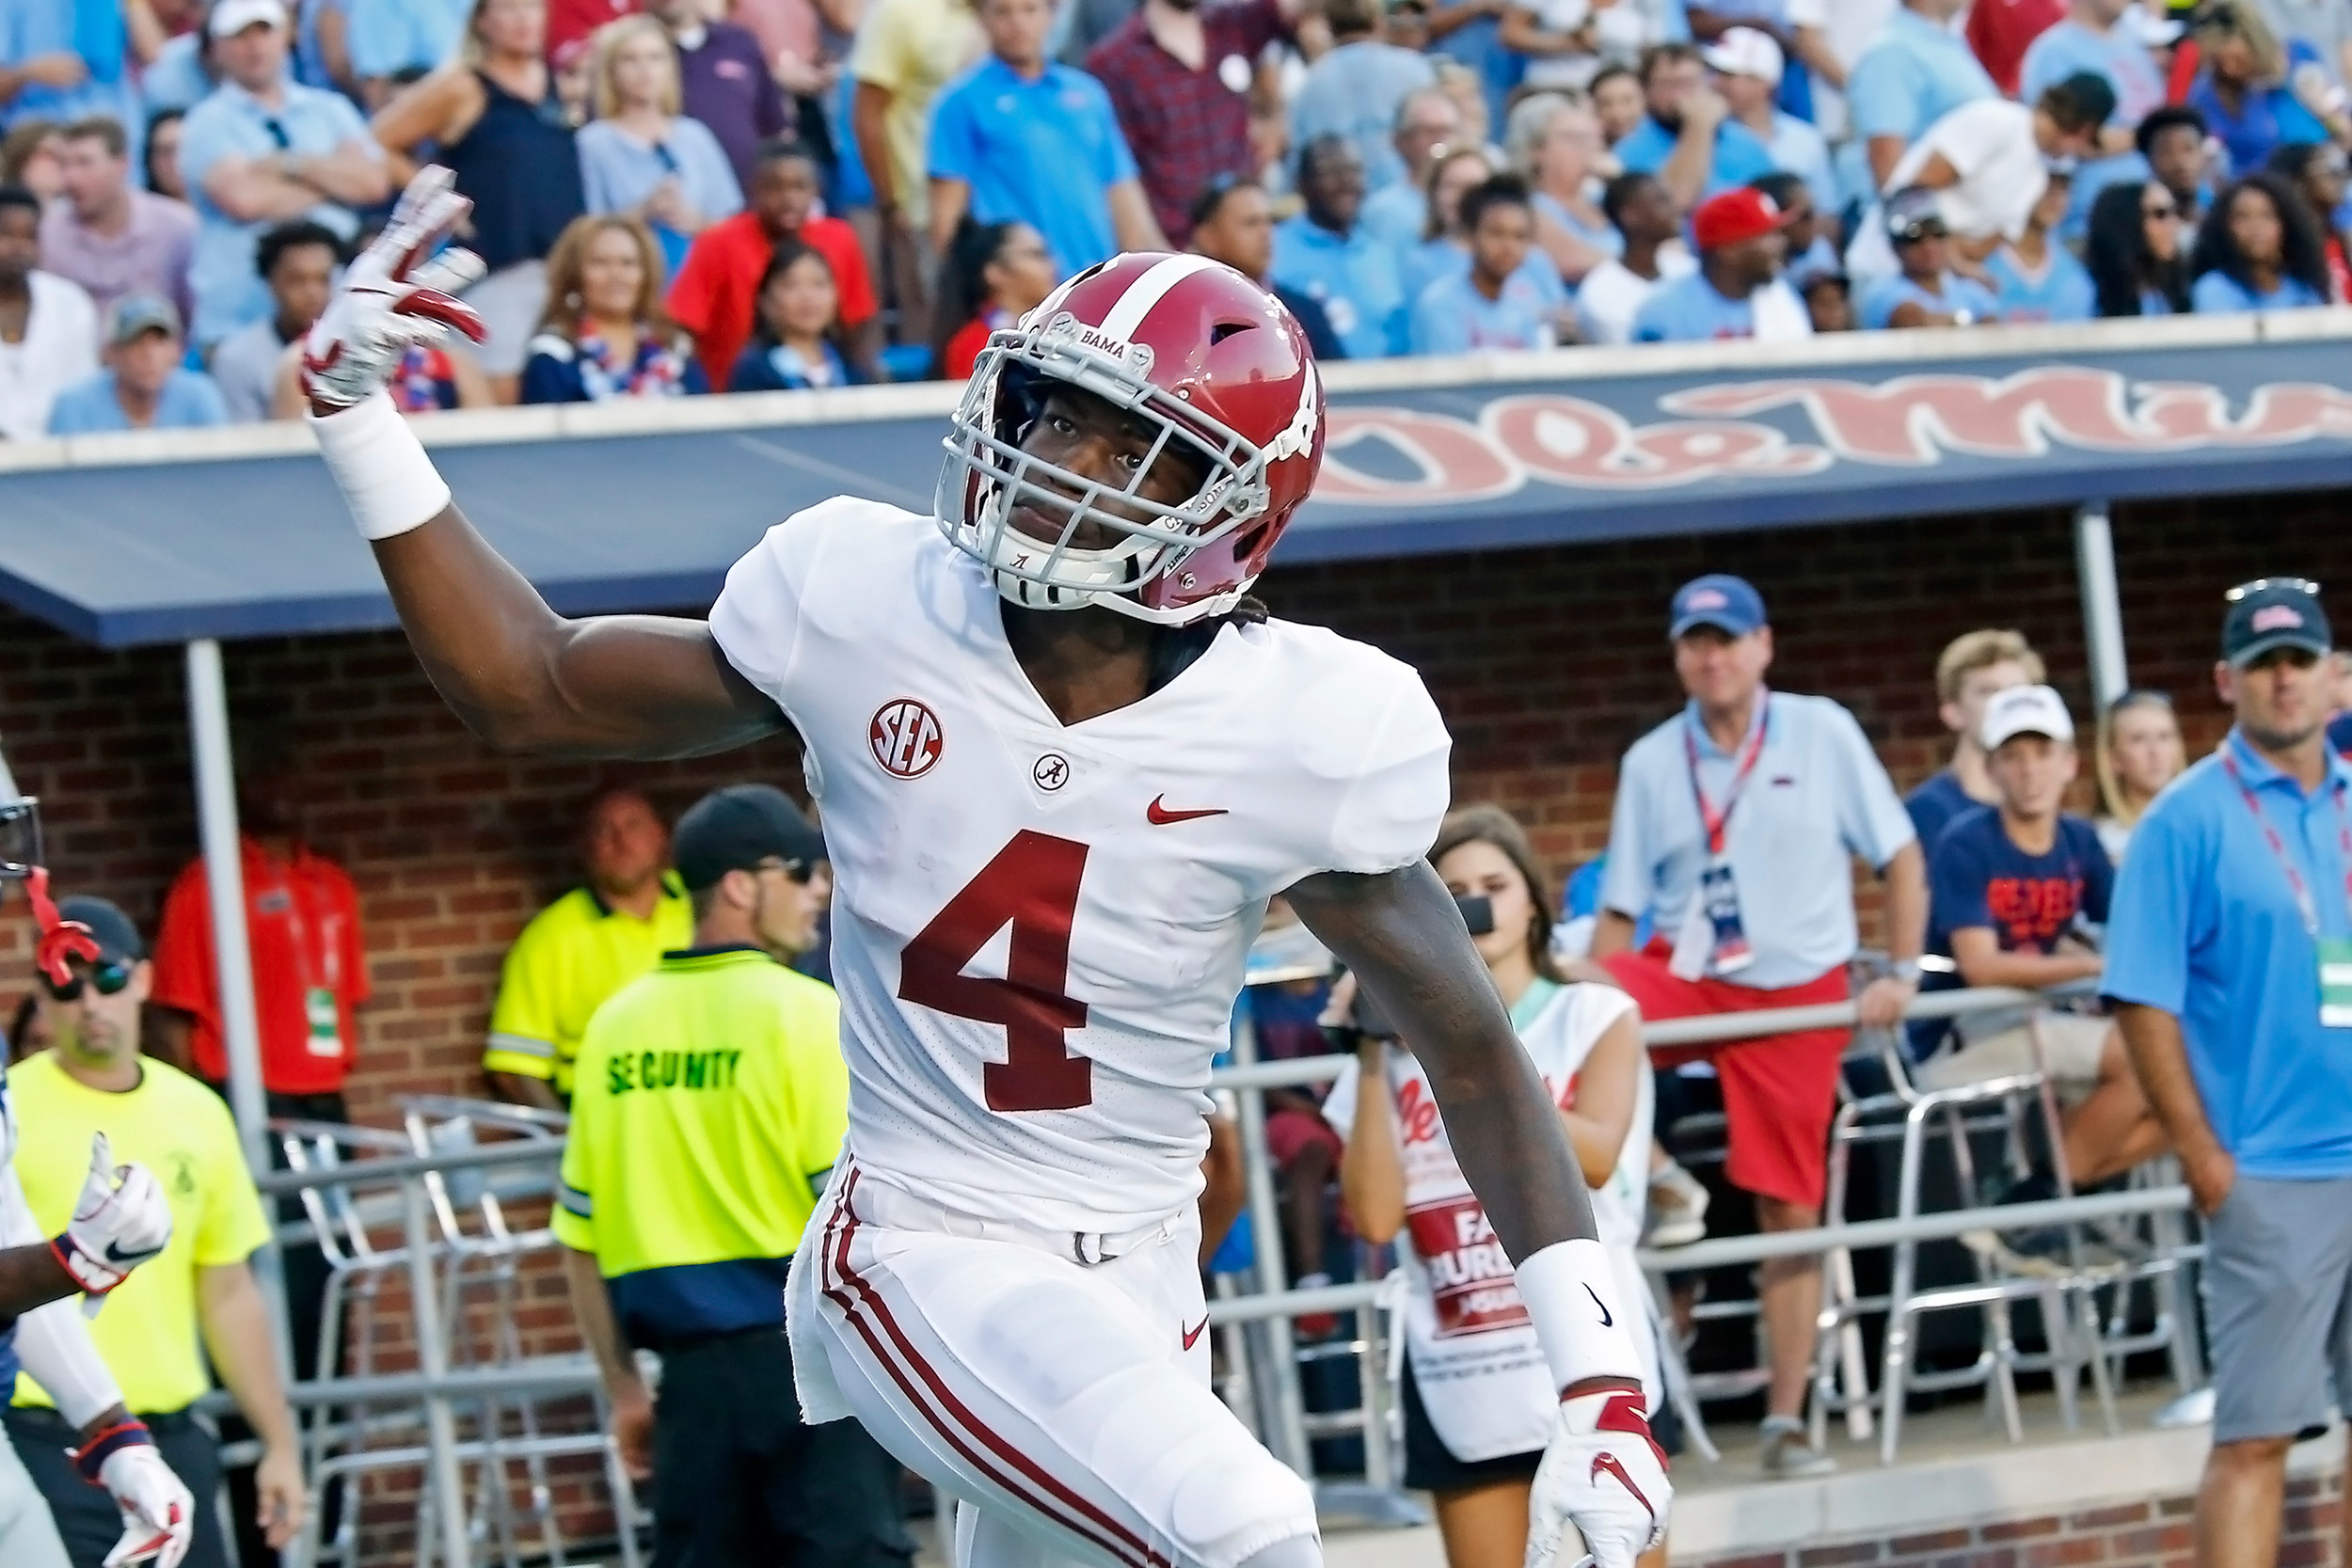 Alabama Crimson Tide wide receiver Jerry Jeudy (4) gestures to the crowd after scoring a touchdown during the game between the University of Alabama and Ole Miss at Vaught-Hemingway Stadium. Jason Clark / Daily Mountain Eagle